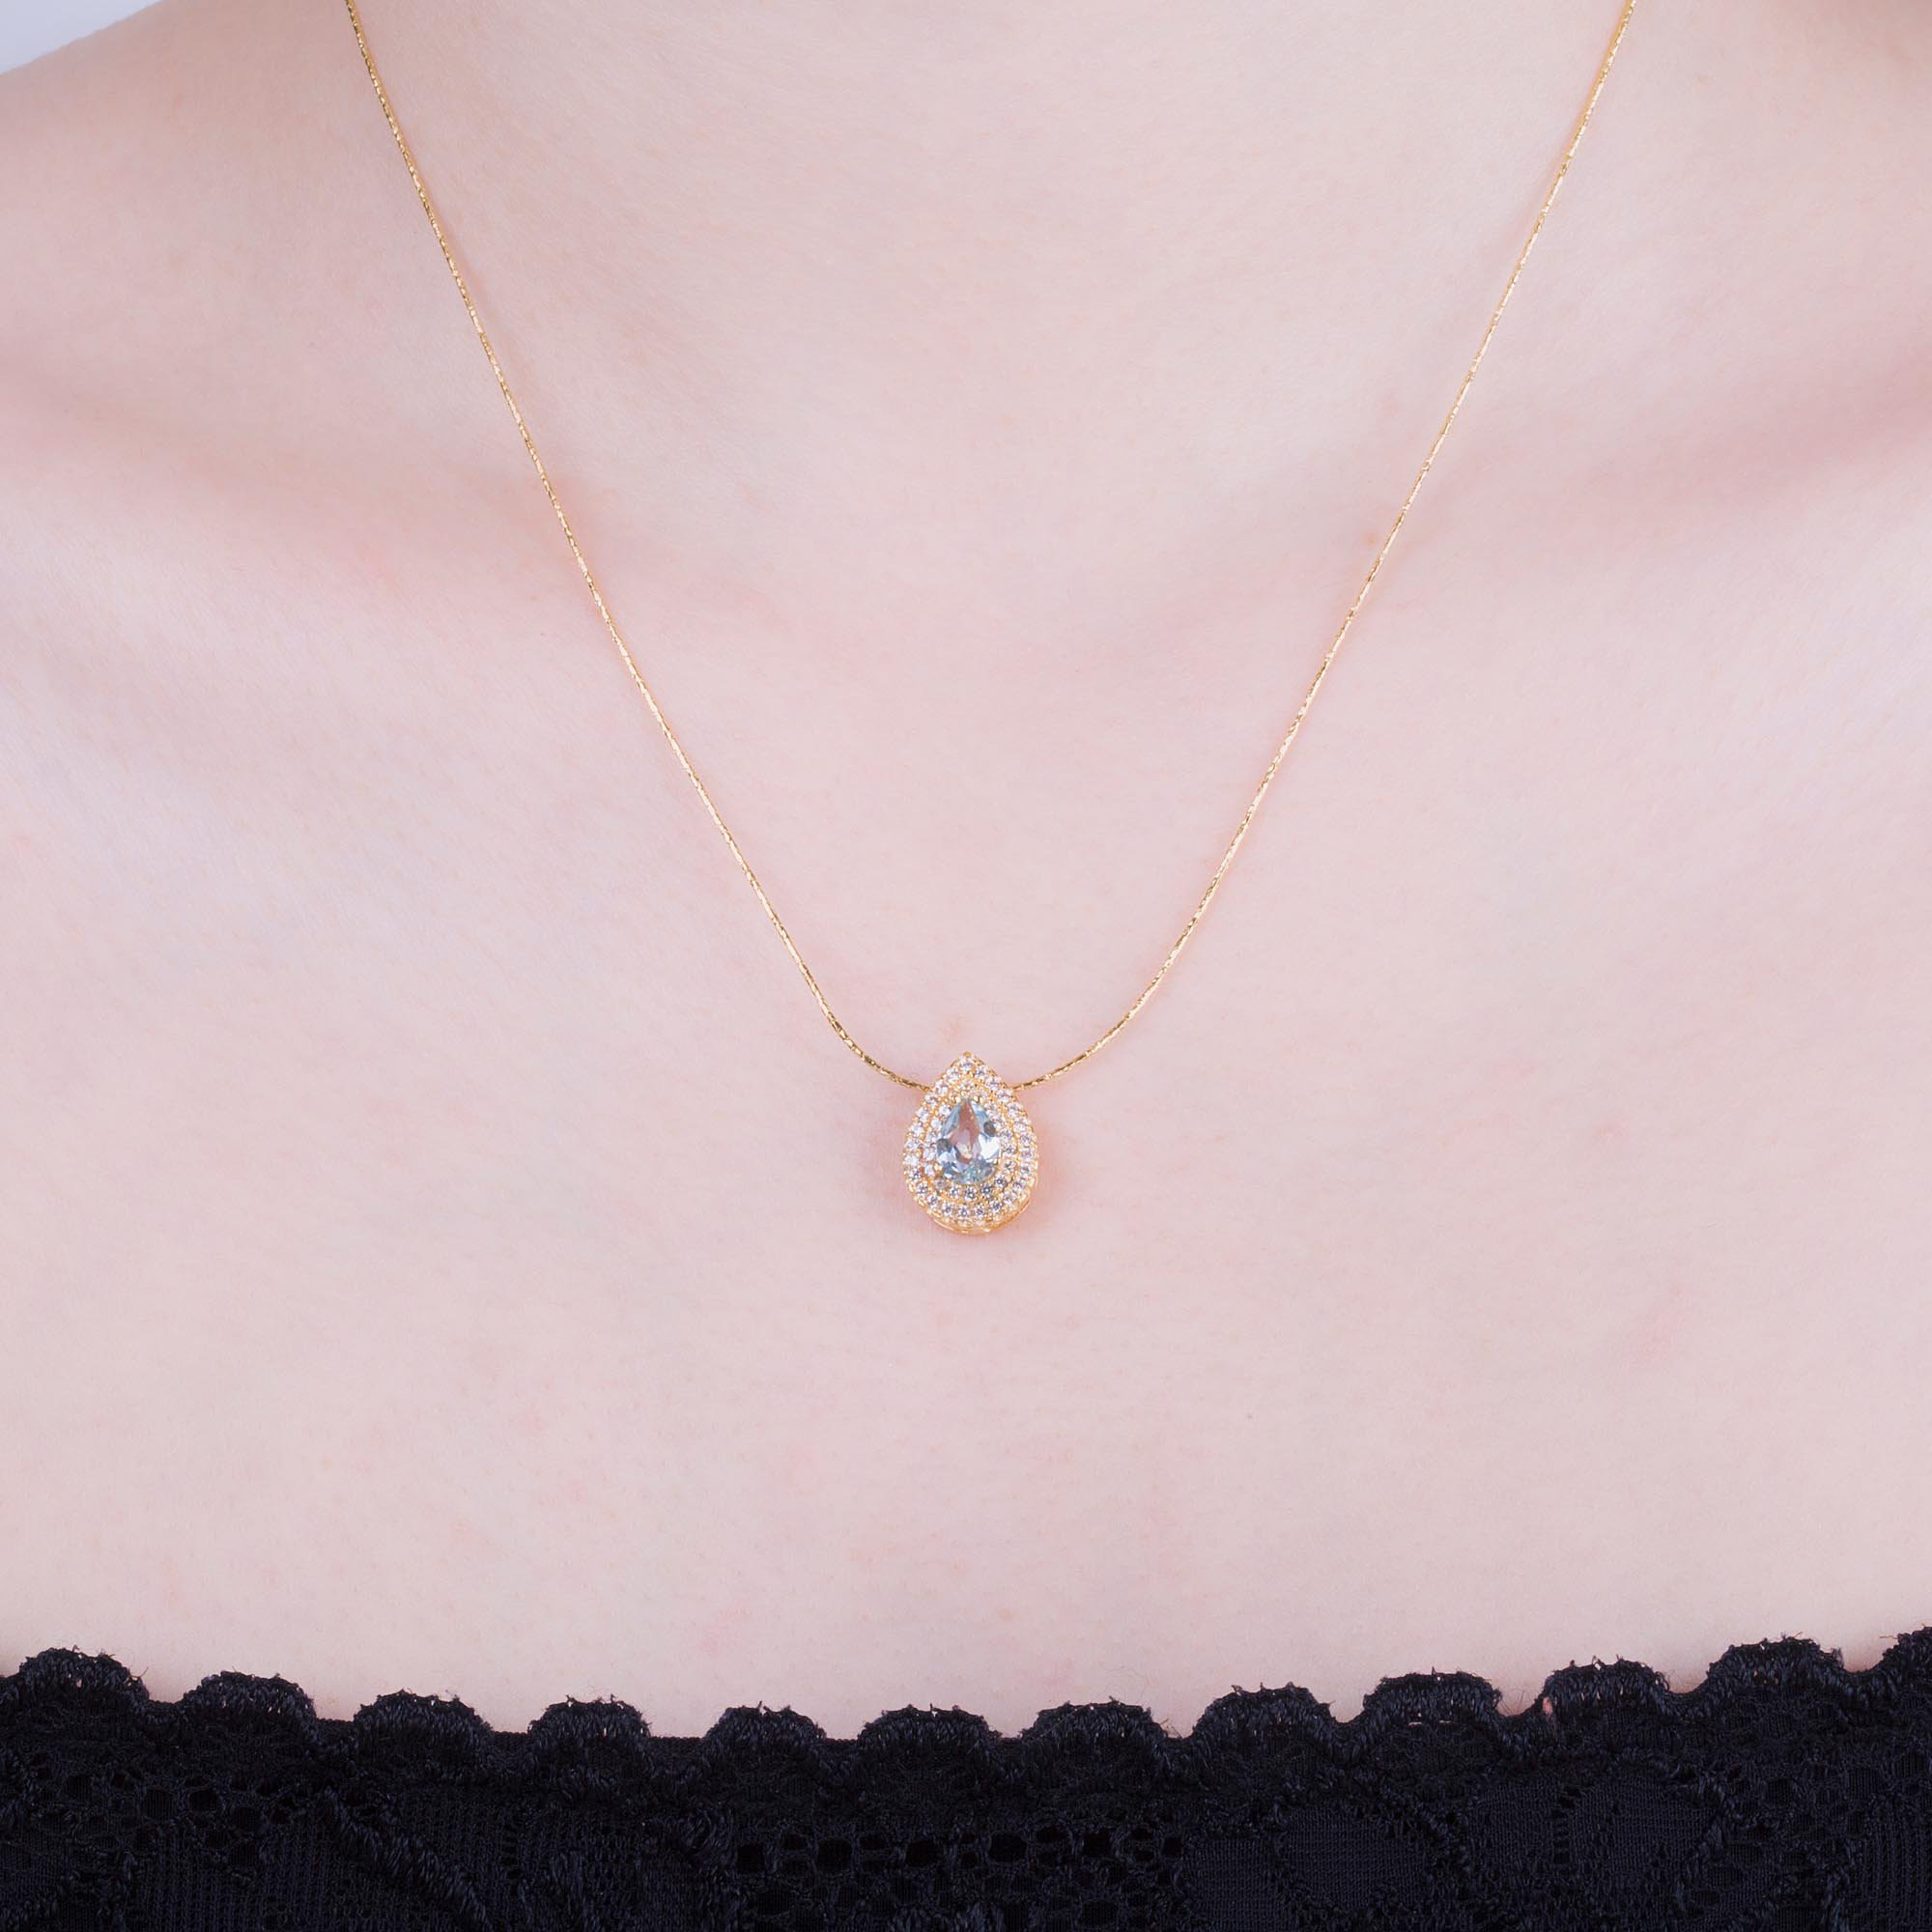 necklace classic shape a collections graff diamond pendants featuring pear pendant